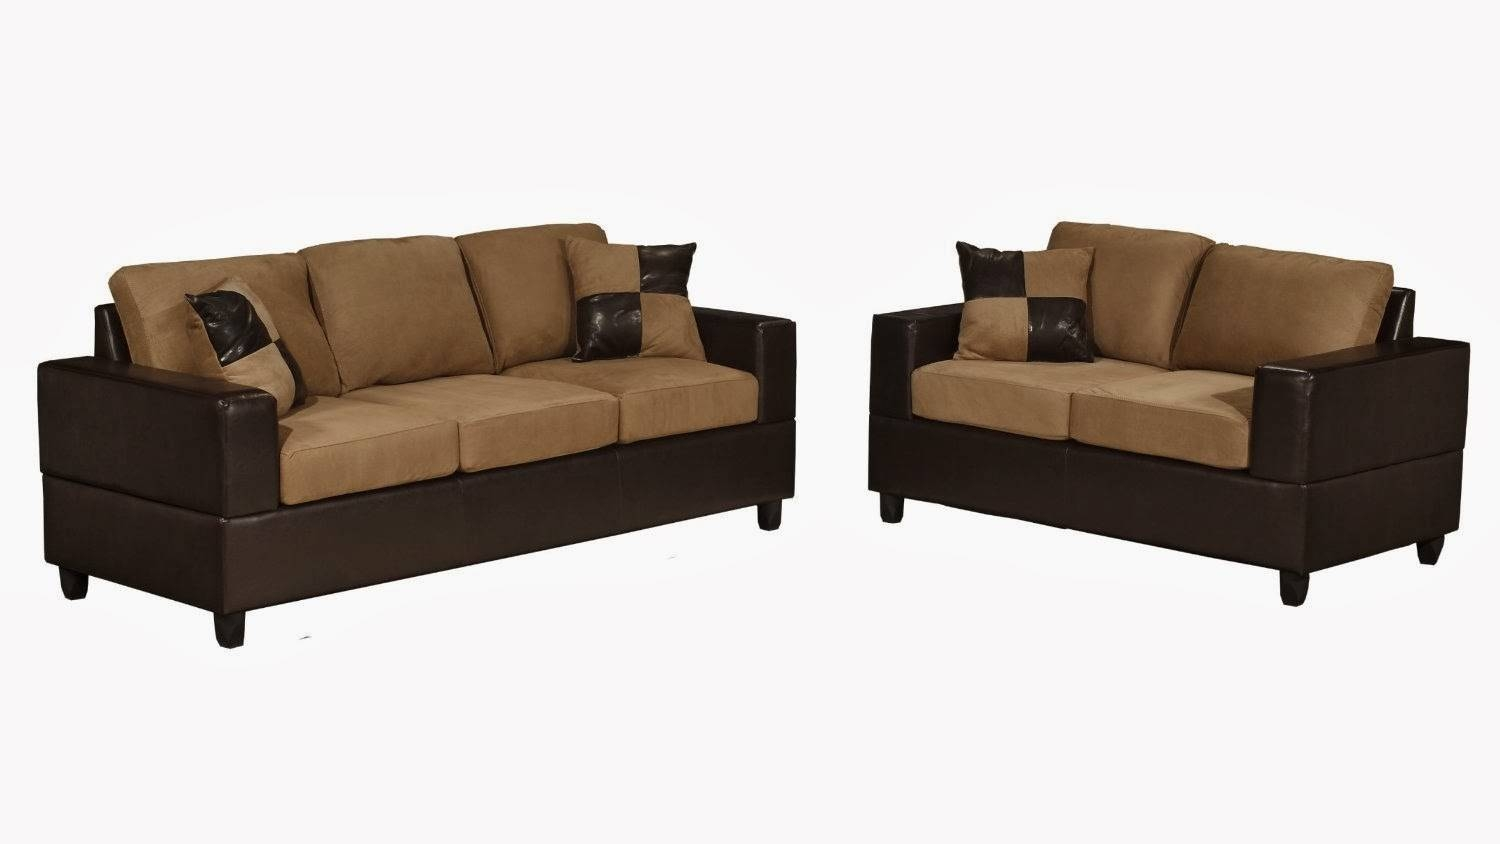 Compact Sectional Sofa - Cleanupflorida for Eggplant Sectional Sofa (Image 4 of 30)